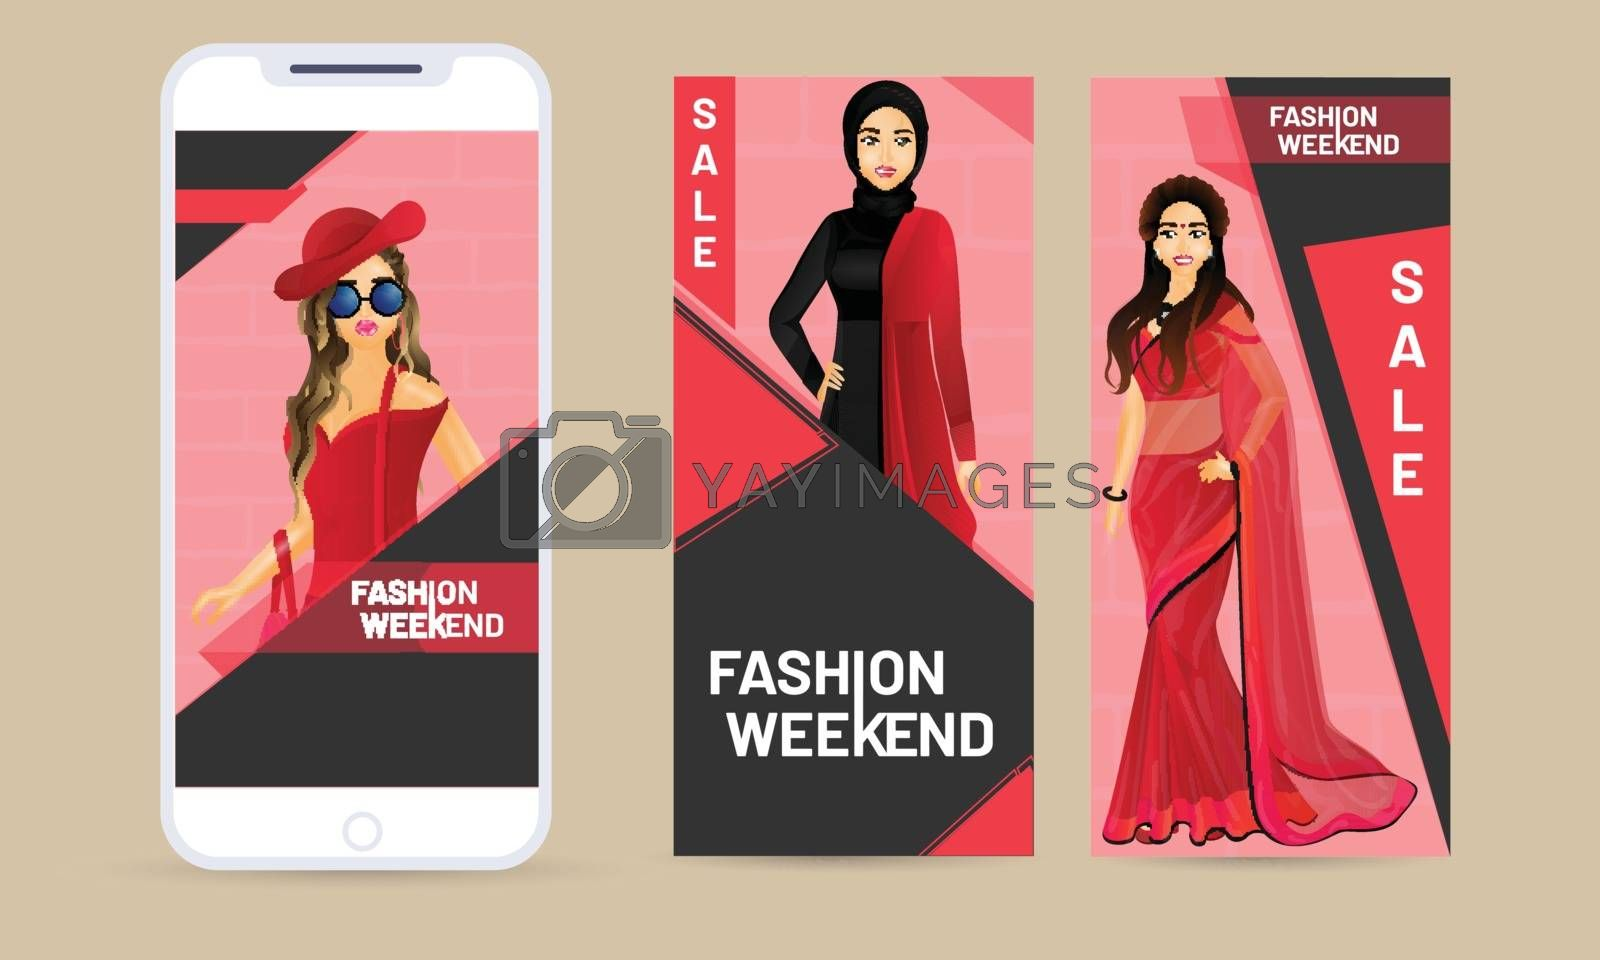 Royalty free image of Online fashion weekend app in smartphone with illustration of be by aispl